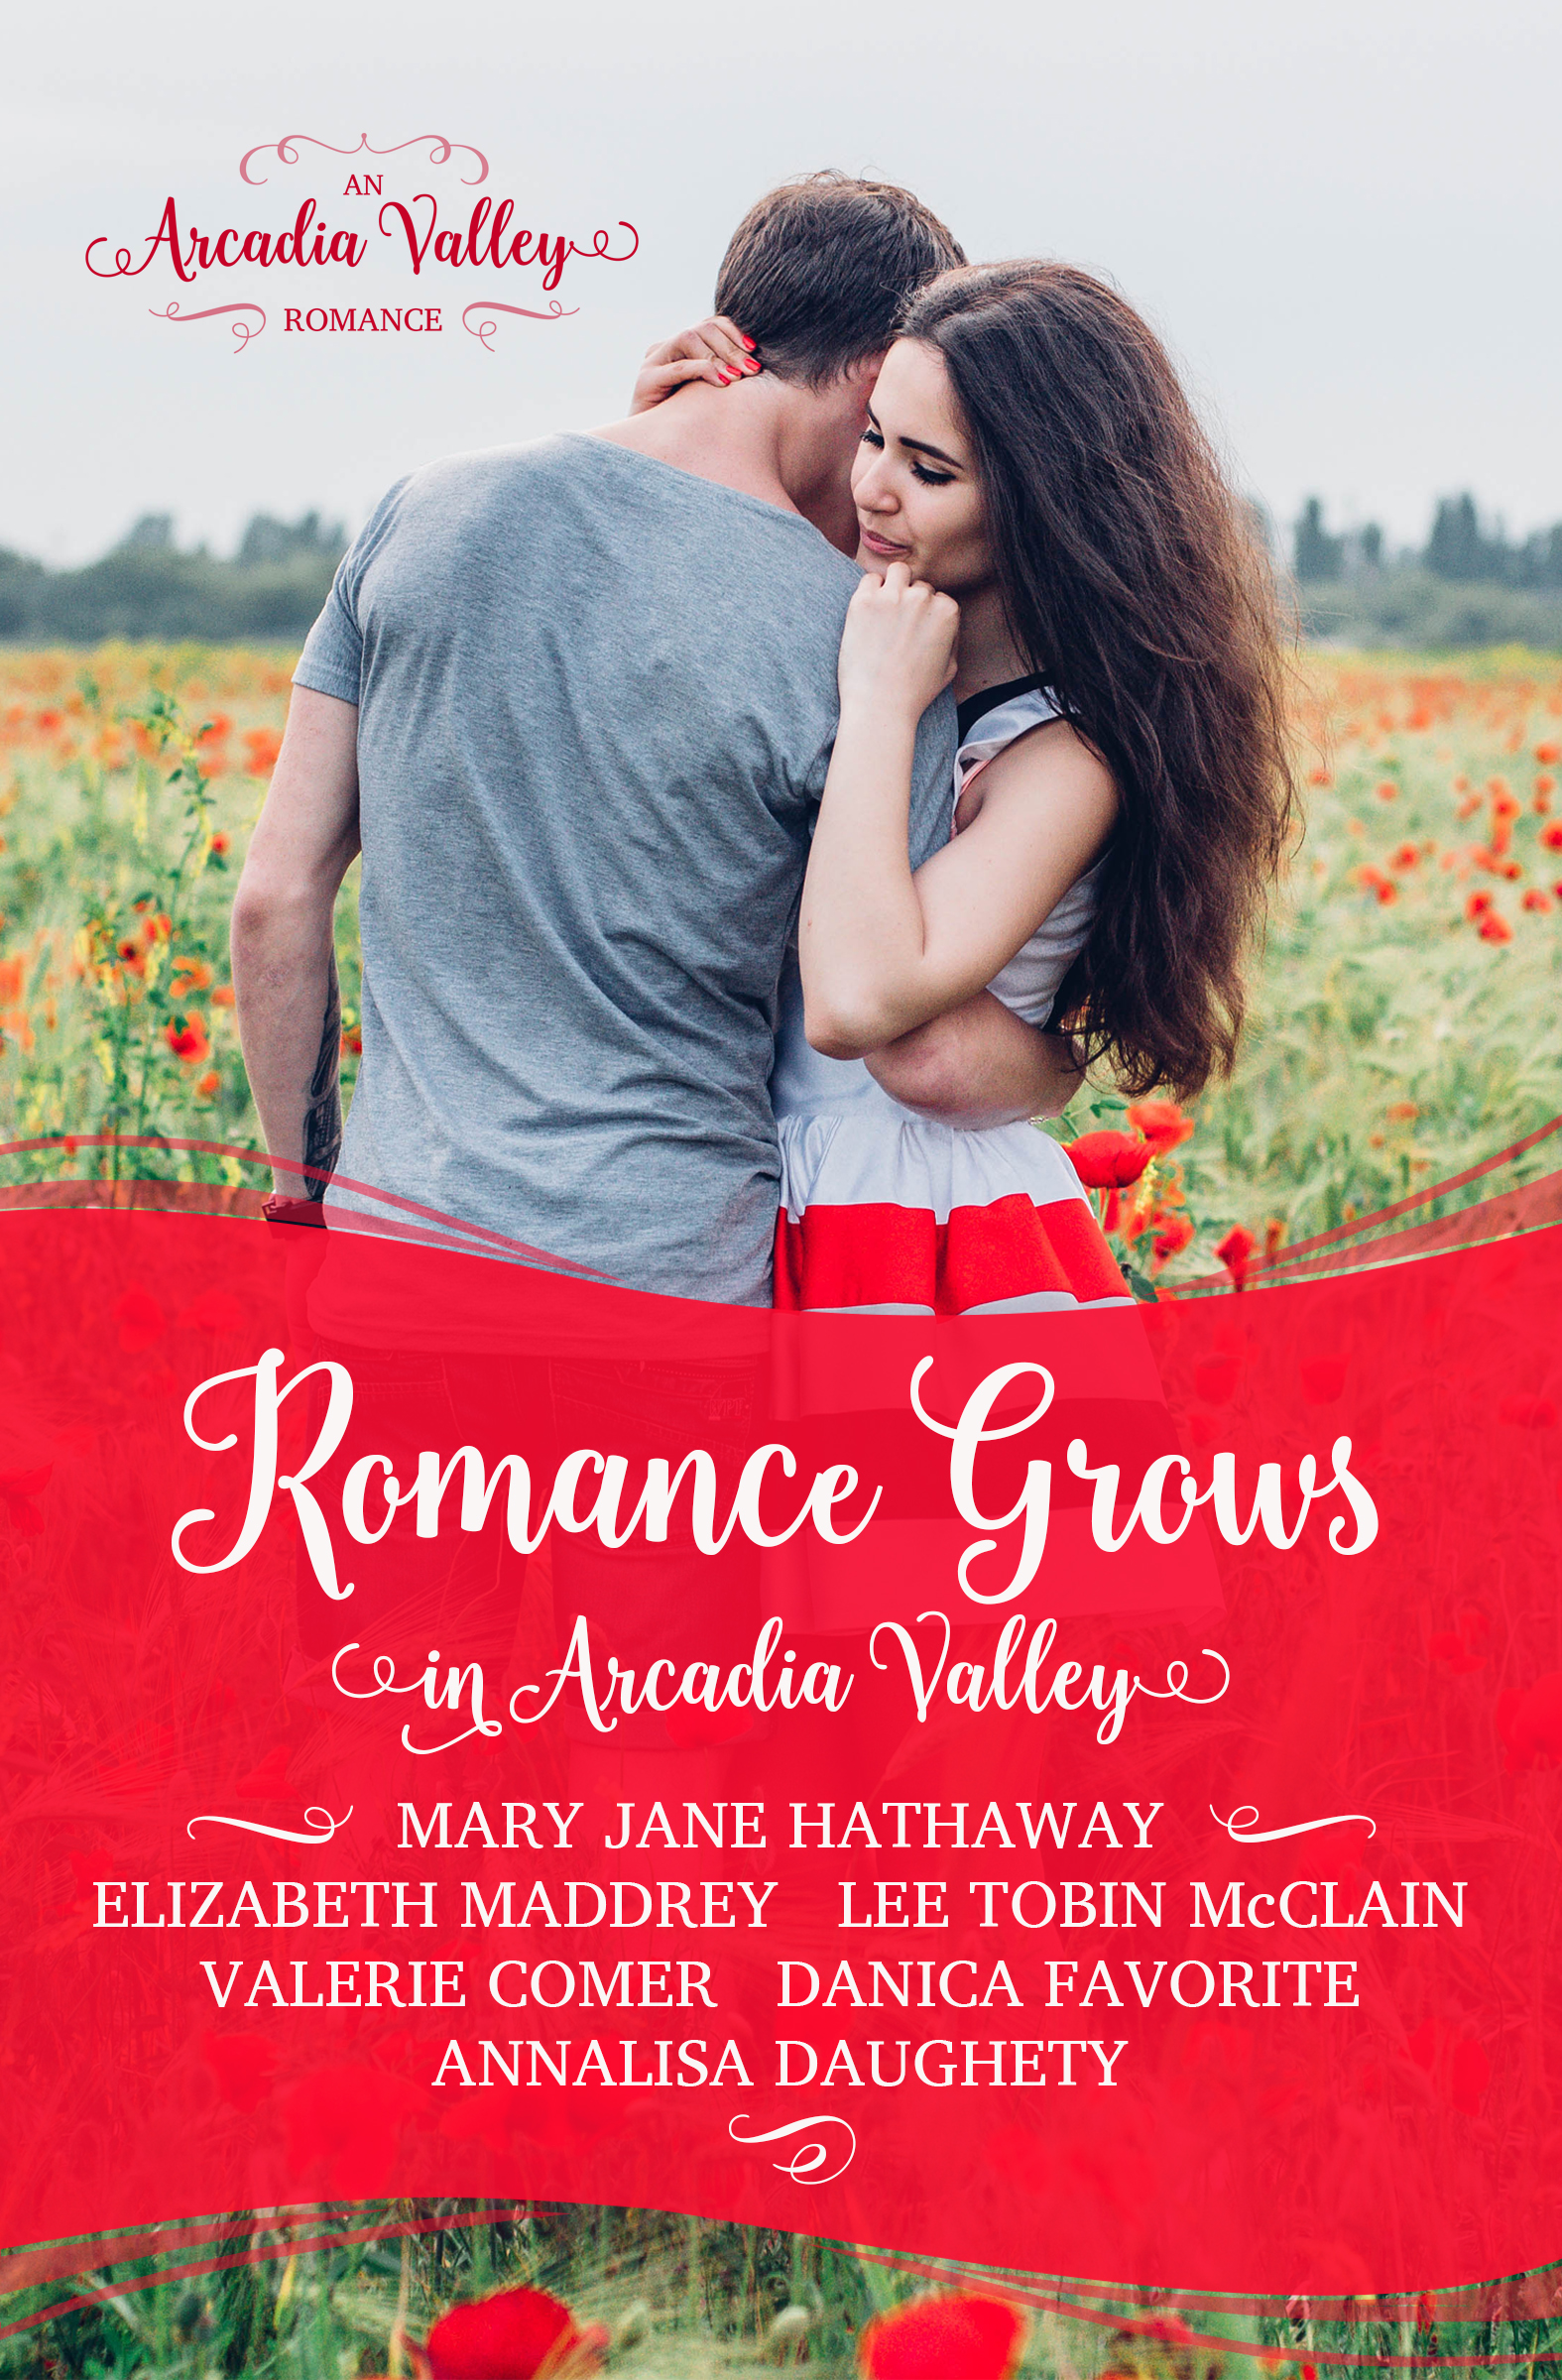 Romance Grows In Arcadia Valley Is Here!